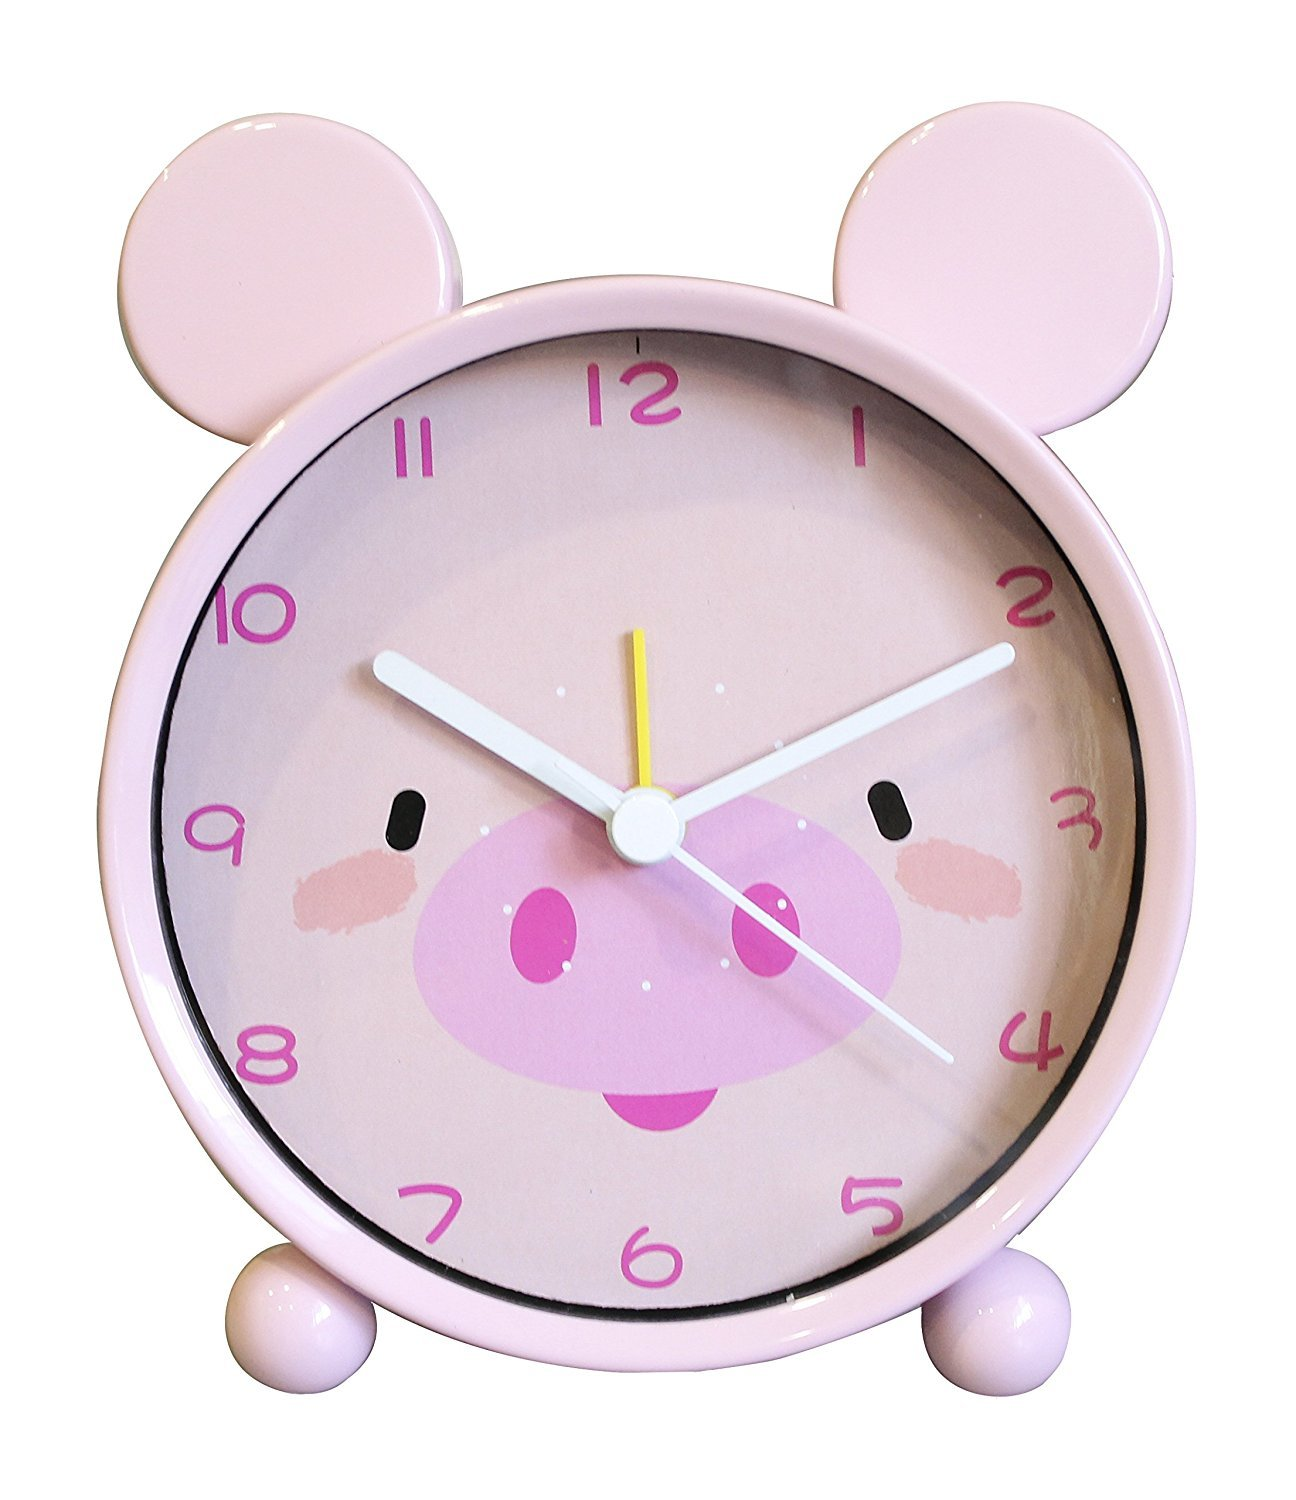 Girls Alarm Clock - SILENT - Mental Frame - Animal Alarm Clock For Kids - QUIET - Pig Pink